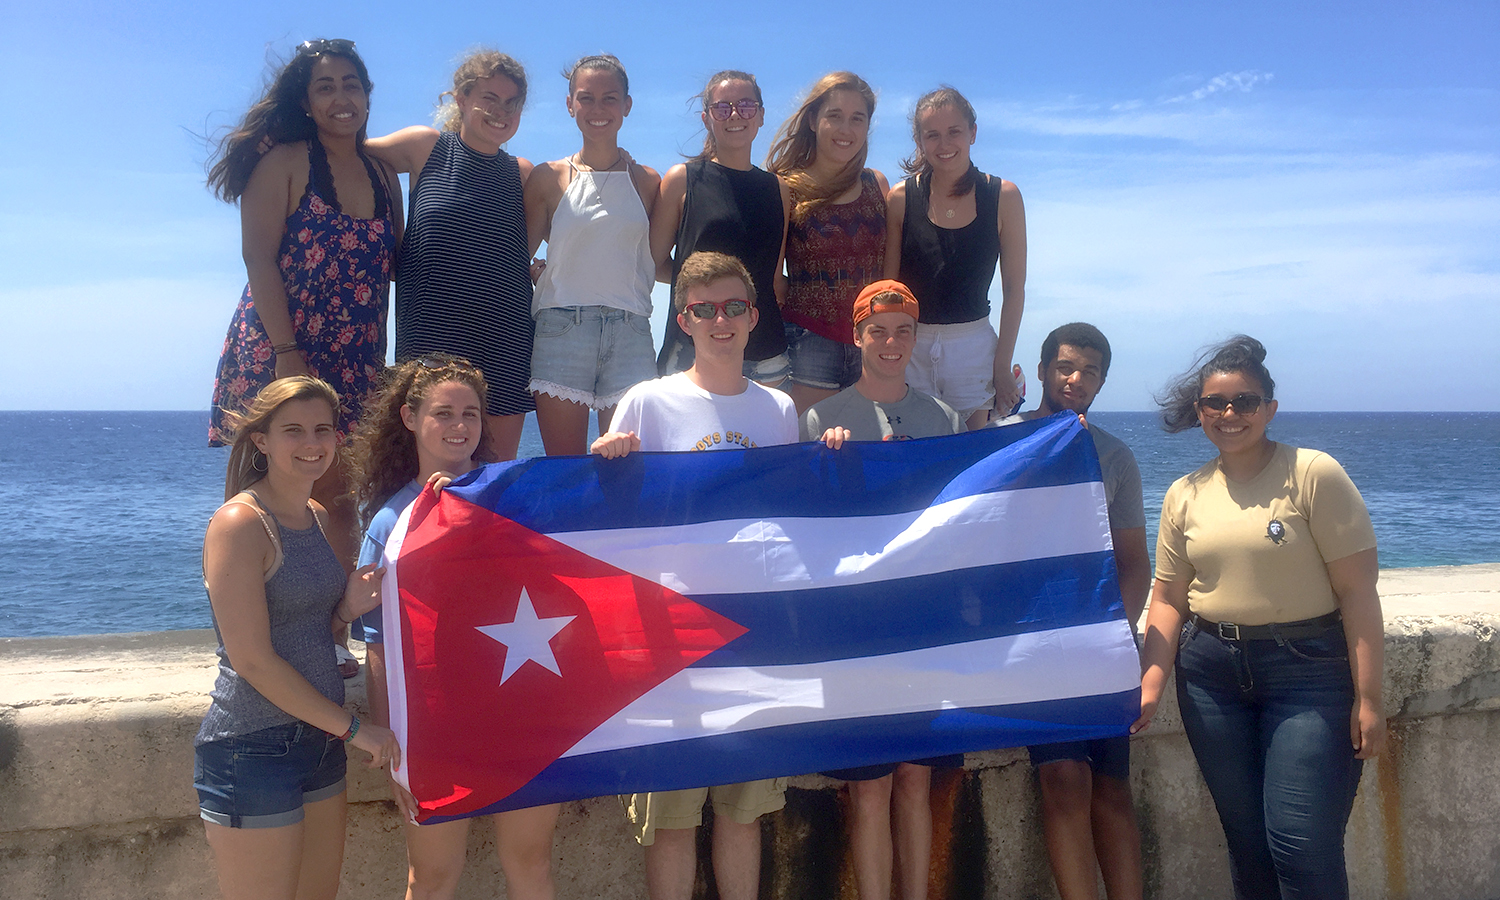 A group of 13 HWS students studied abroad to Havana, Cuba for a three week trip this summer to learn about Cuban history and culture. Here, the group poses with the Cuban flag on the Malecón in Vedado.